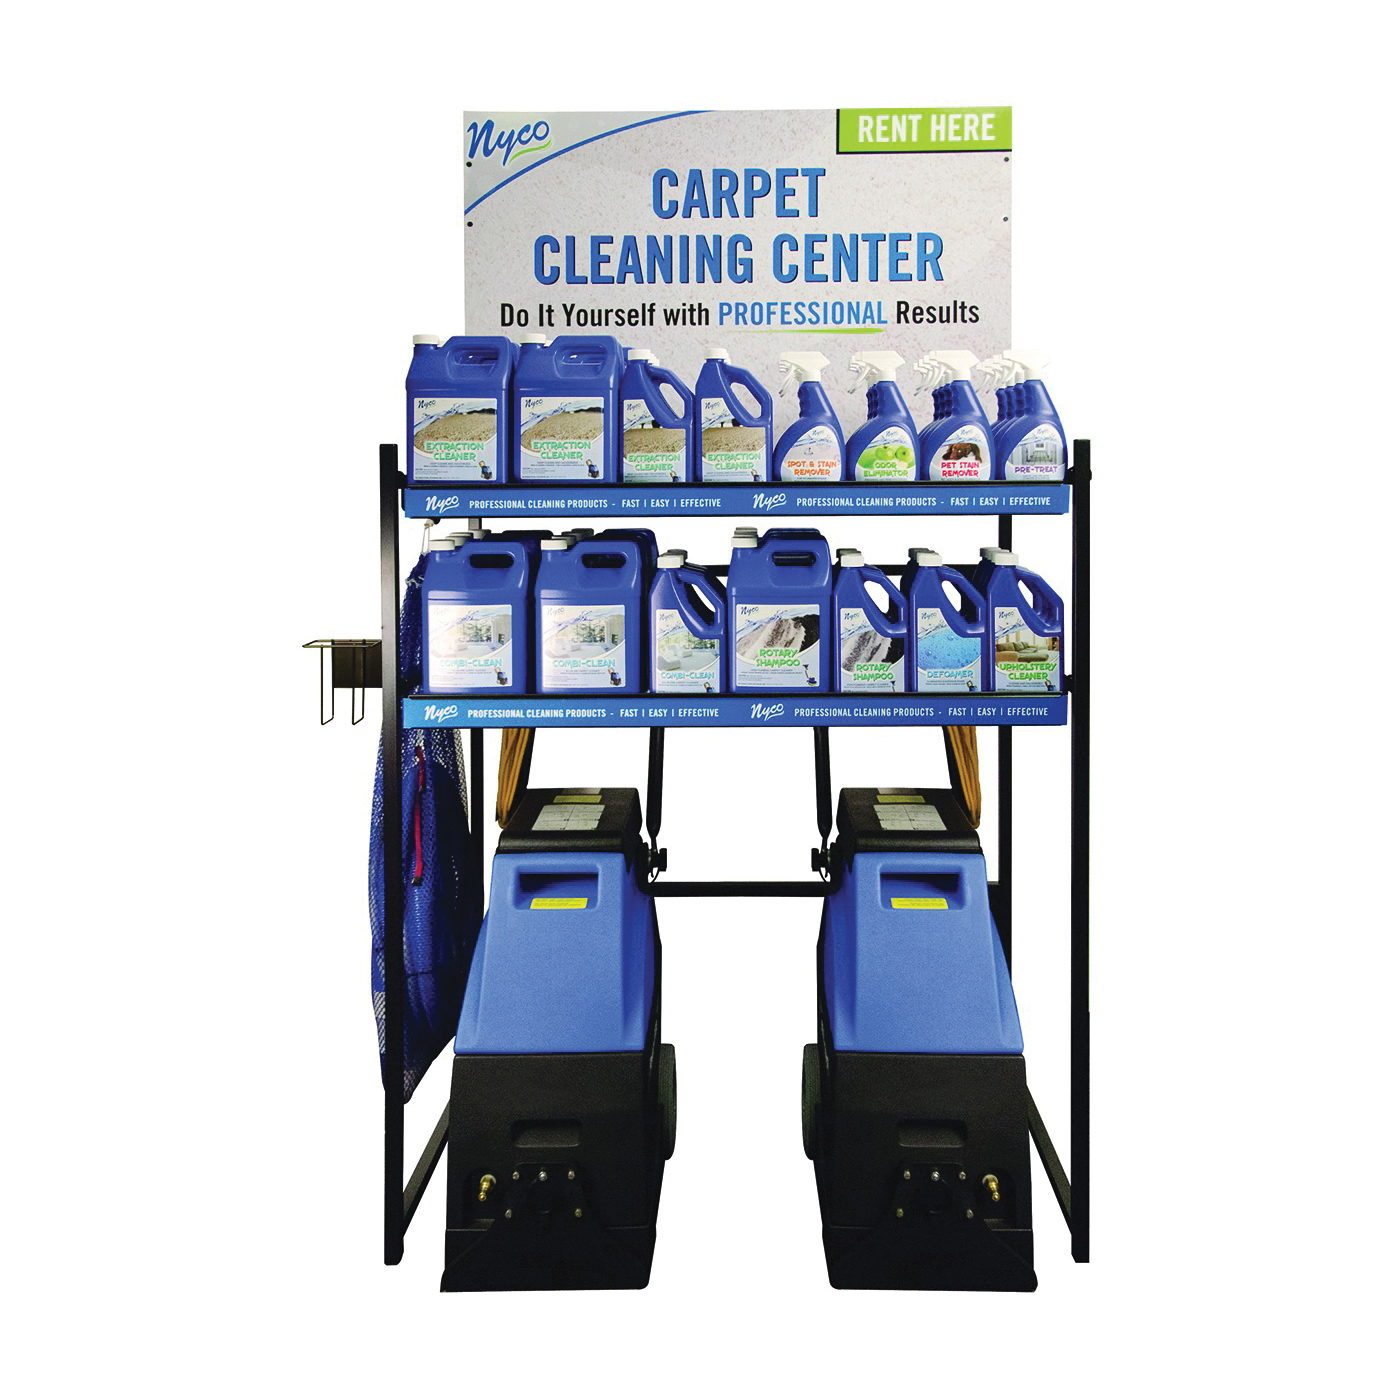 Picture of nyco DSP-CR01 Display Rack, 10 to 12 Case Mixed Products, 3 Carpet Cleaning Machines